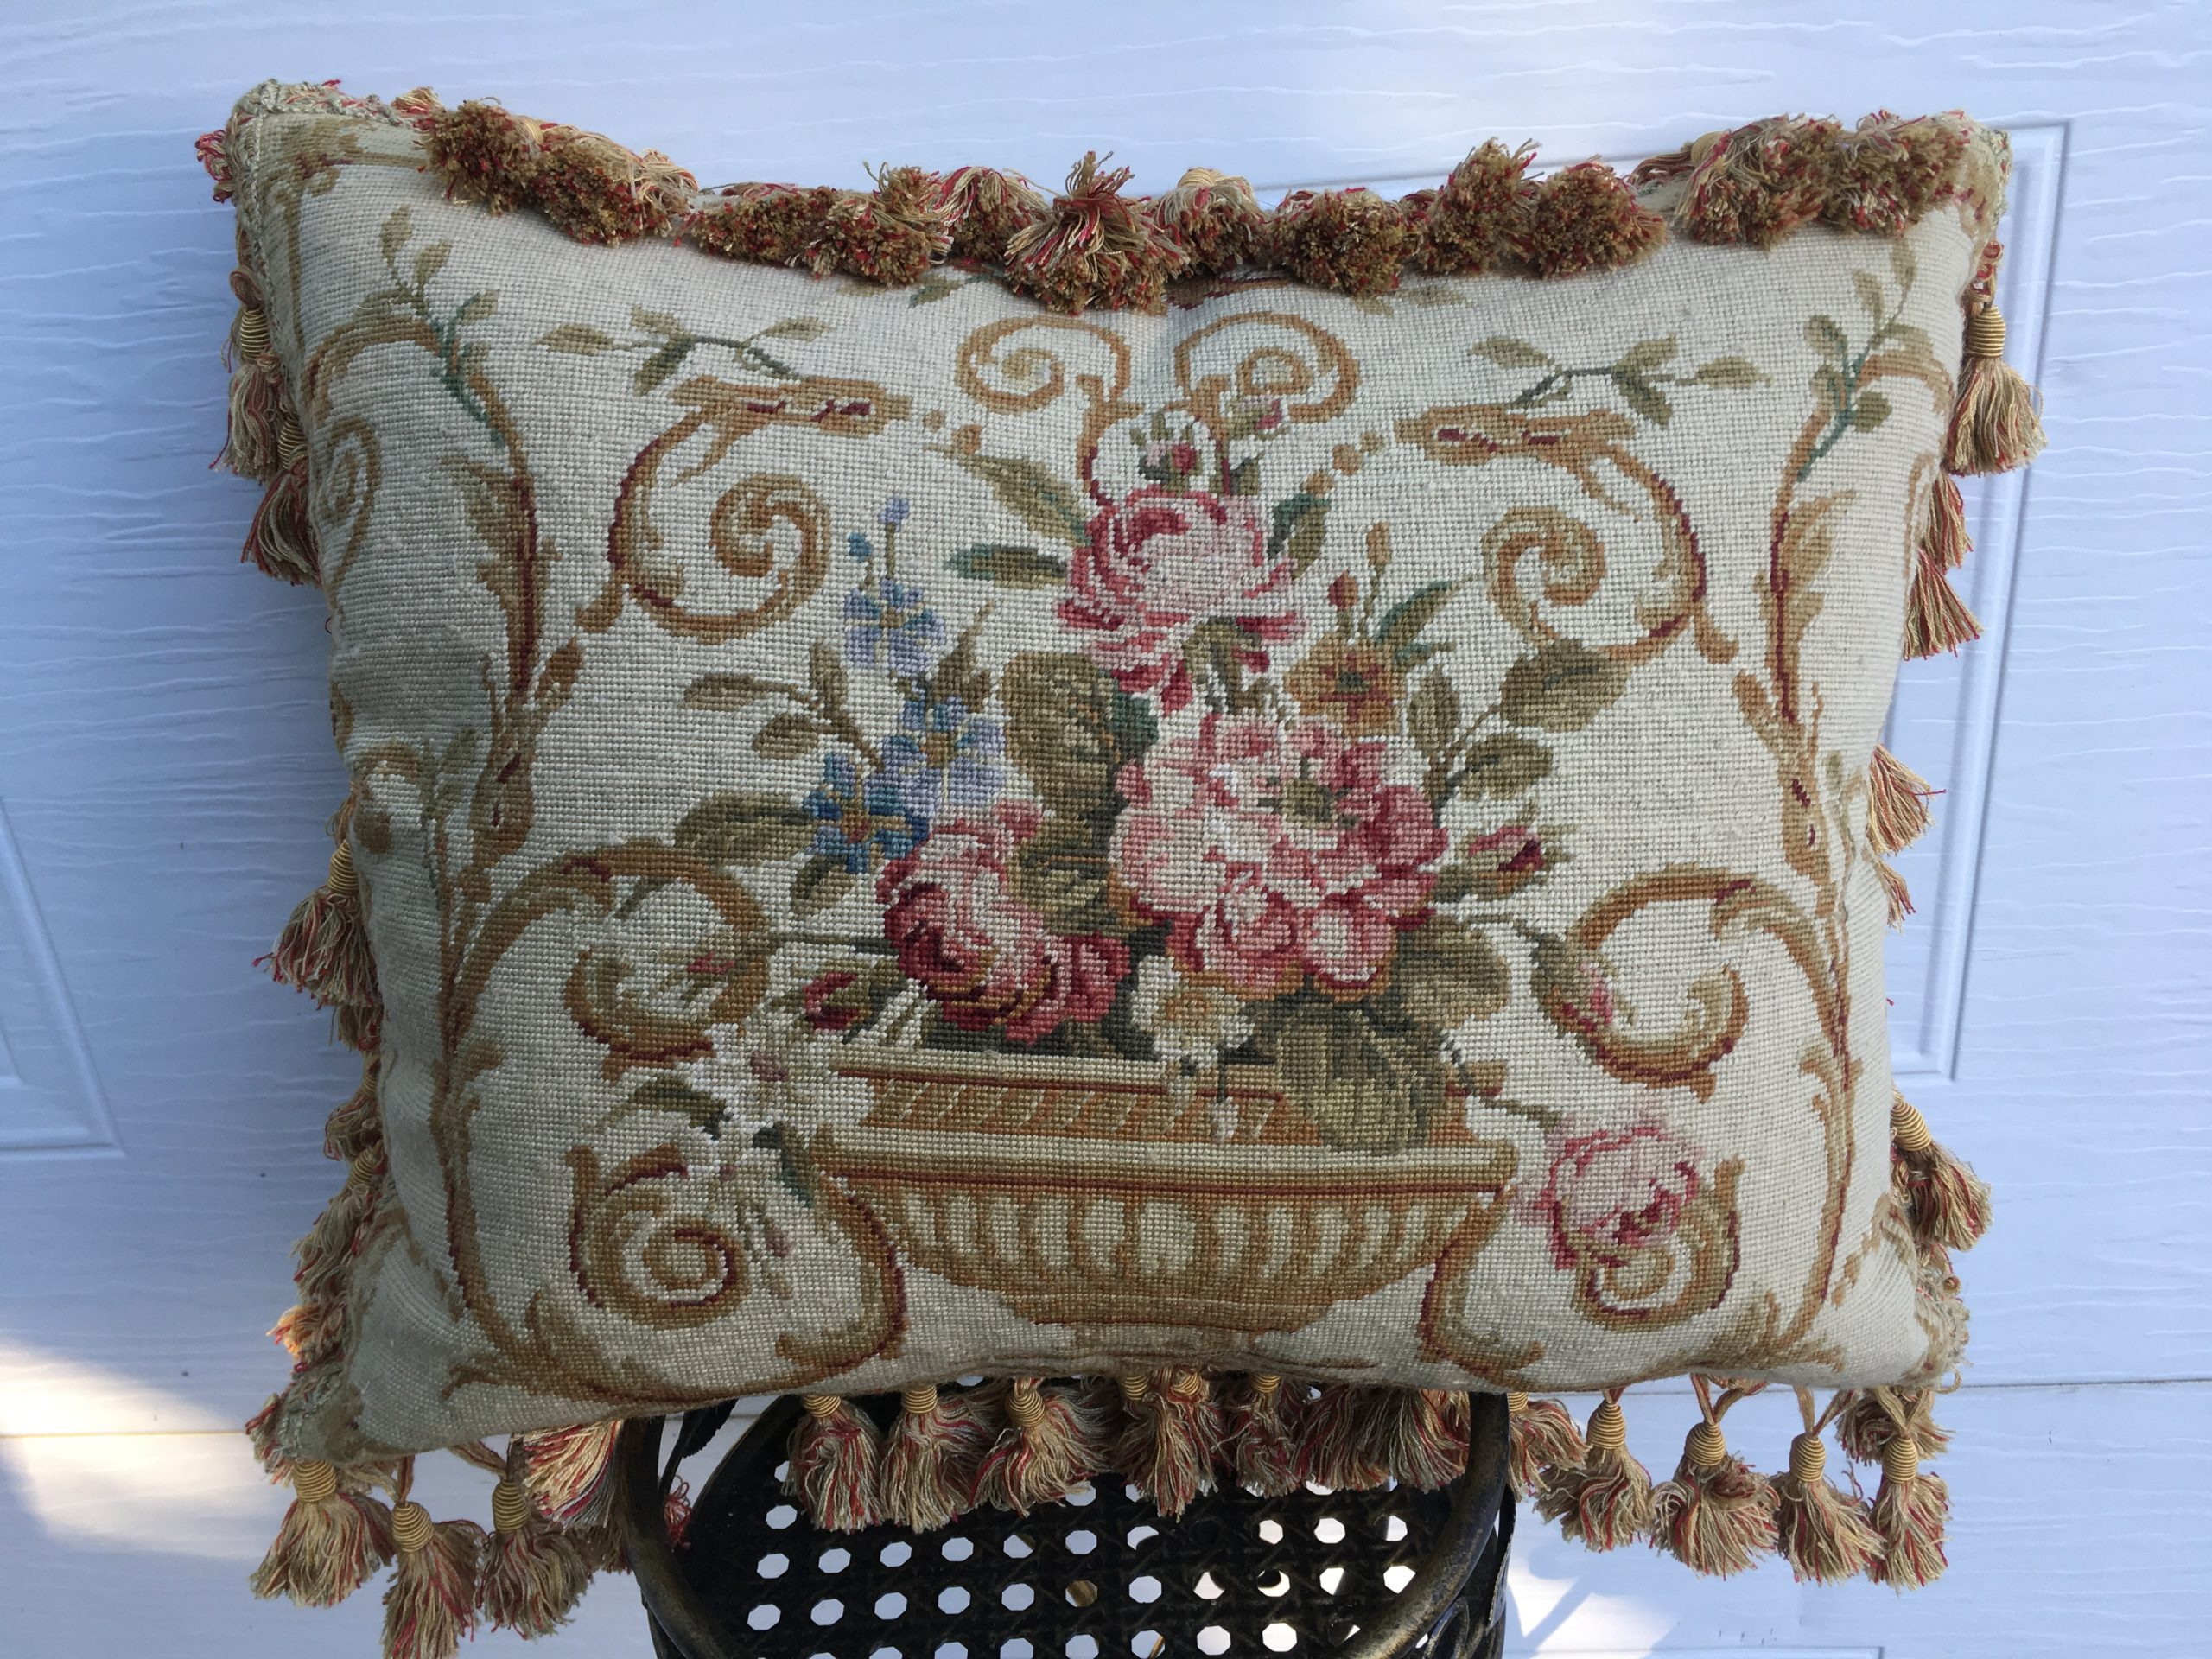 16″ x 20″ Handmade Wool Needlepoint Petit Point Cushion Cover Pillow Case